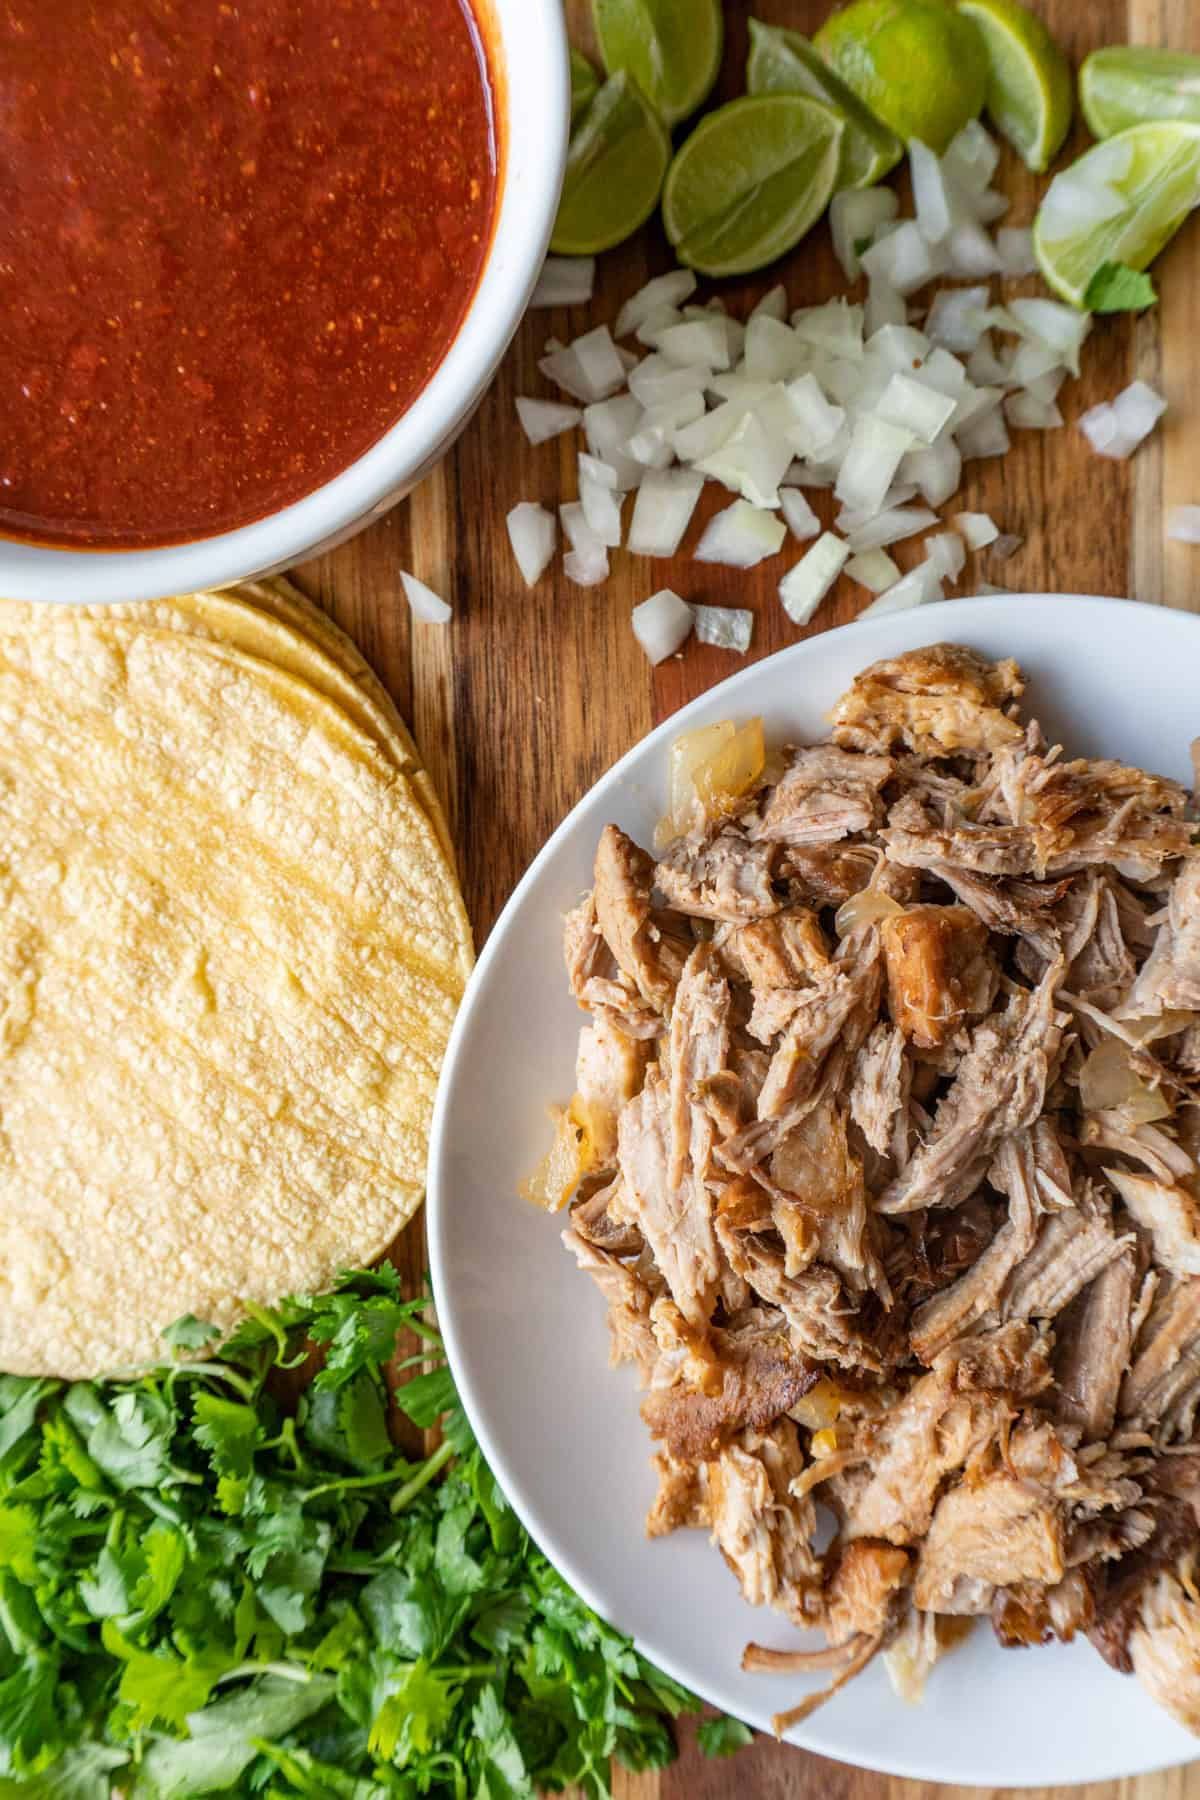 Ingredients for tacos